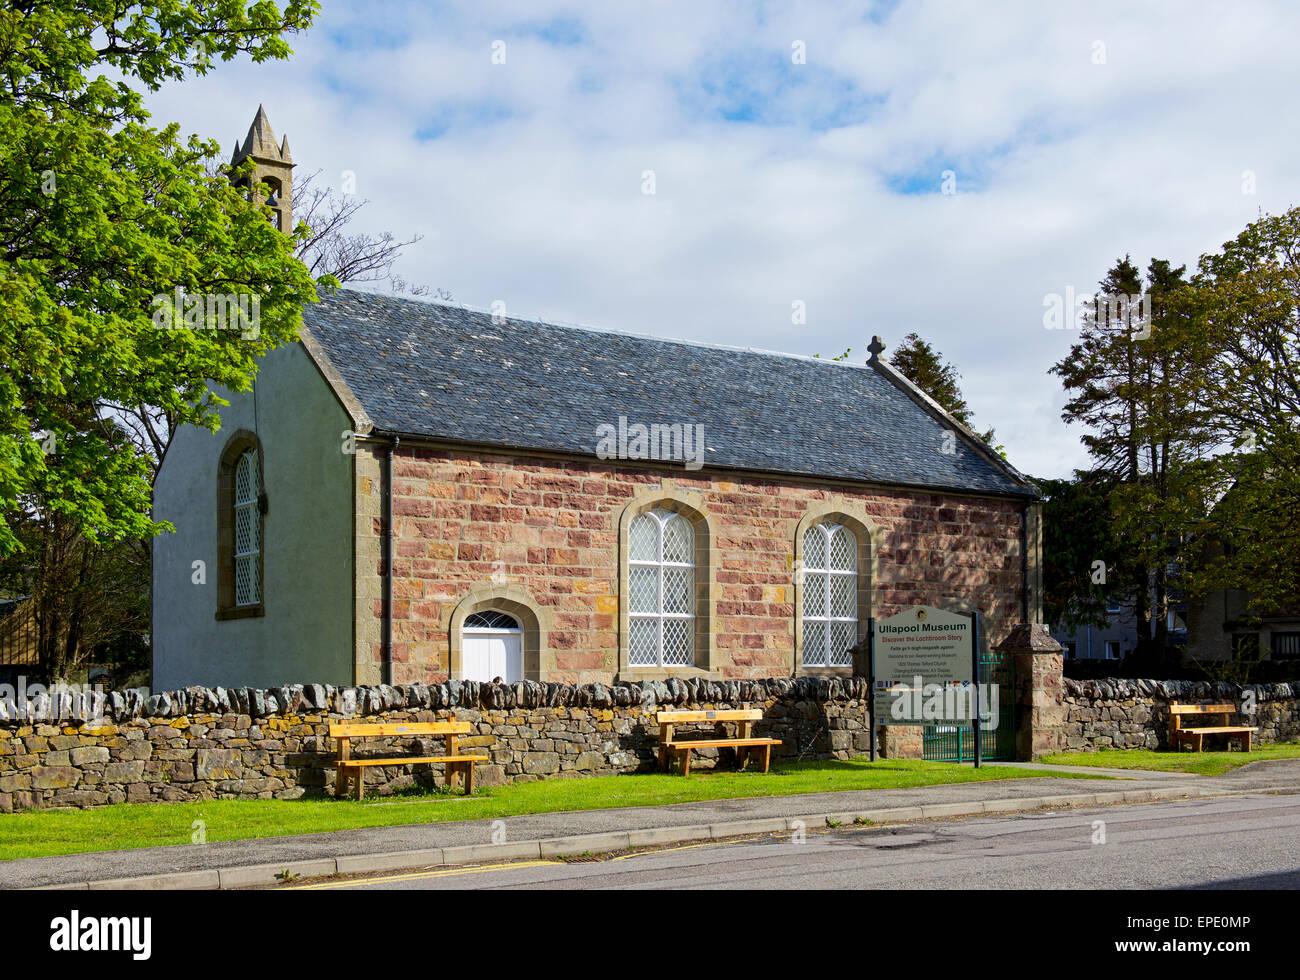 The Ullapool Museum, Ross-shire, Scotland, UK - Stock Image